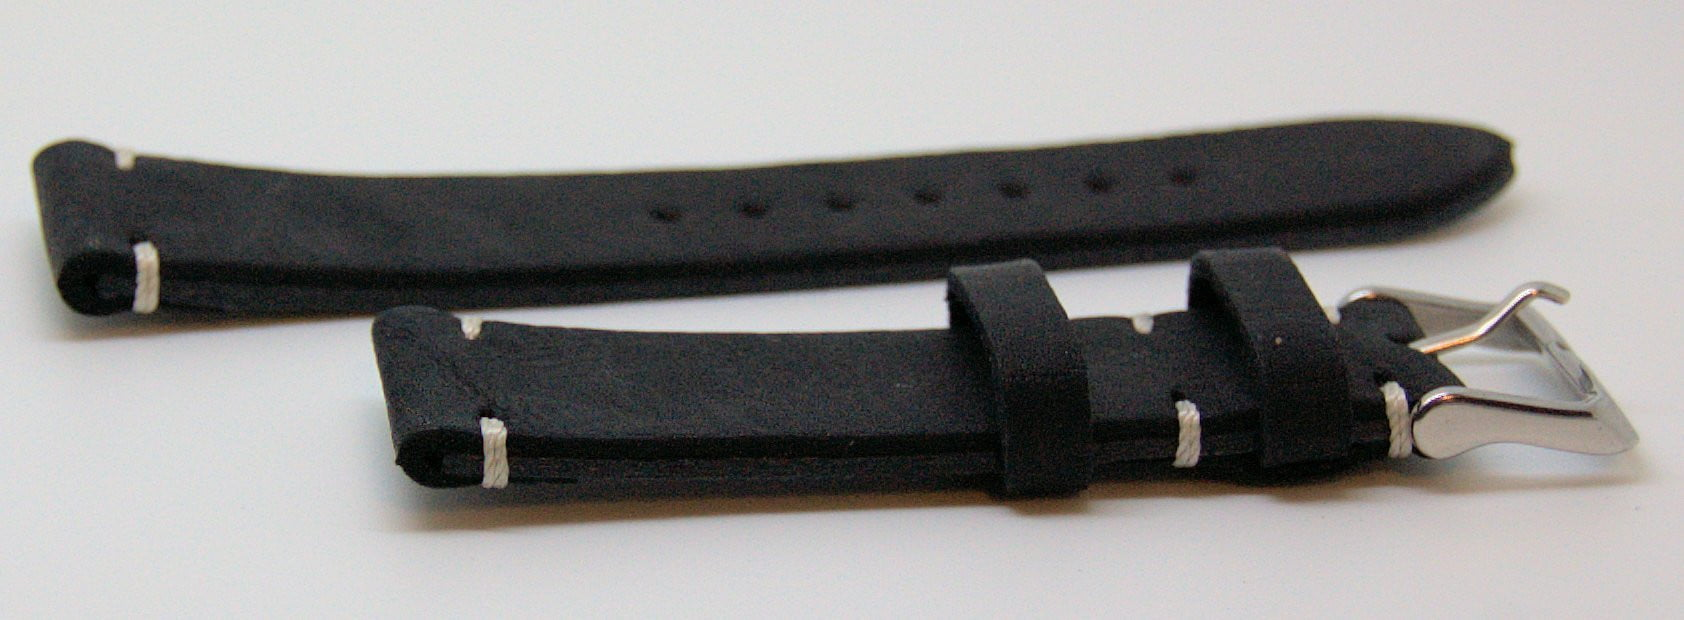 Italian Made 22mm Tapered Nubuck Leather Watch Strap Black - The CGA Company